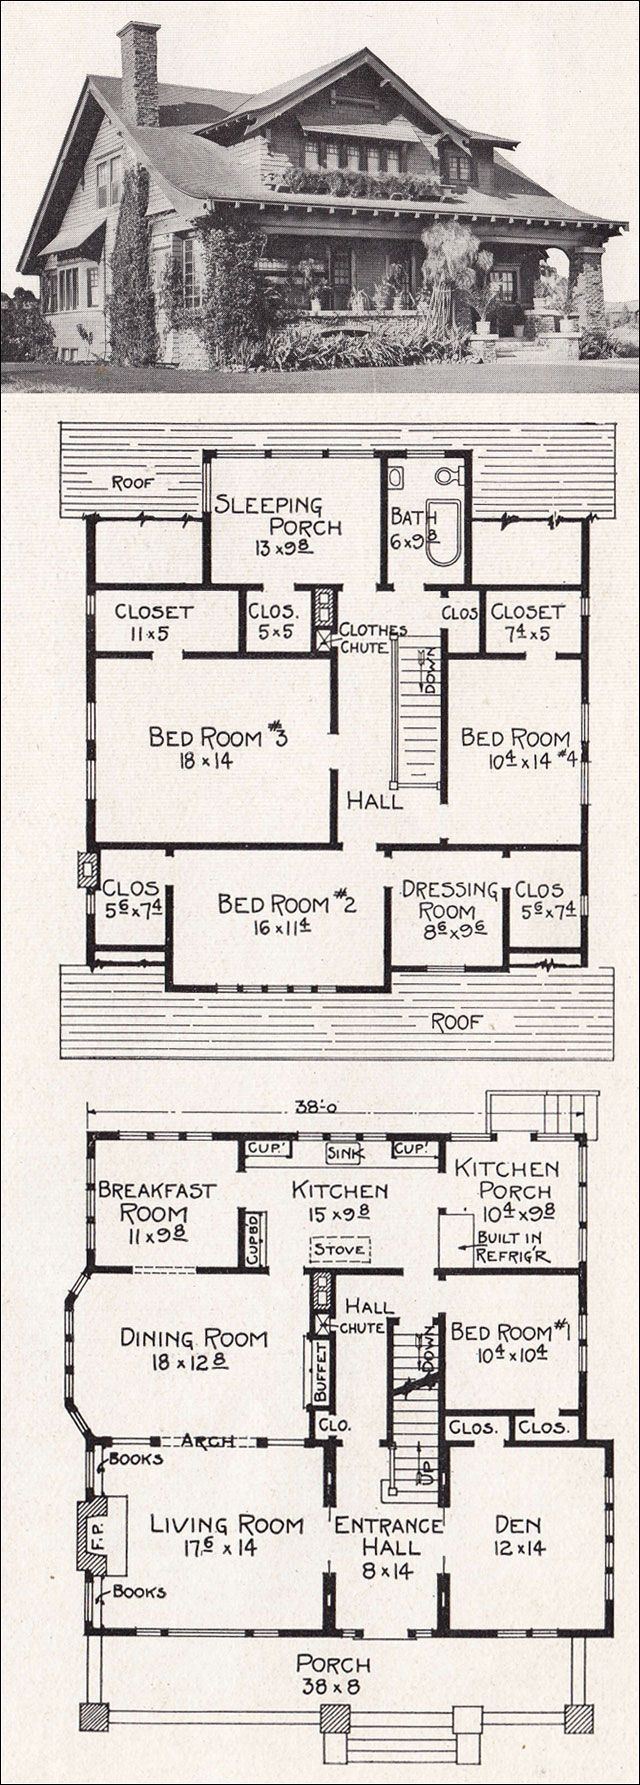 Vintage bungalow house plan architectural illustrations Classic bungalow house plans